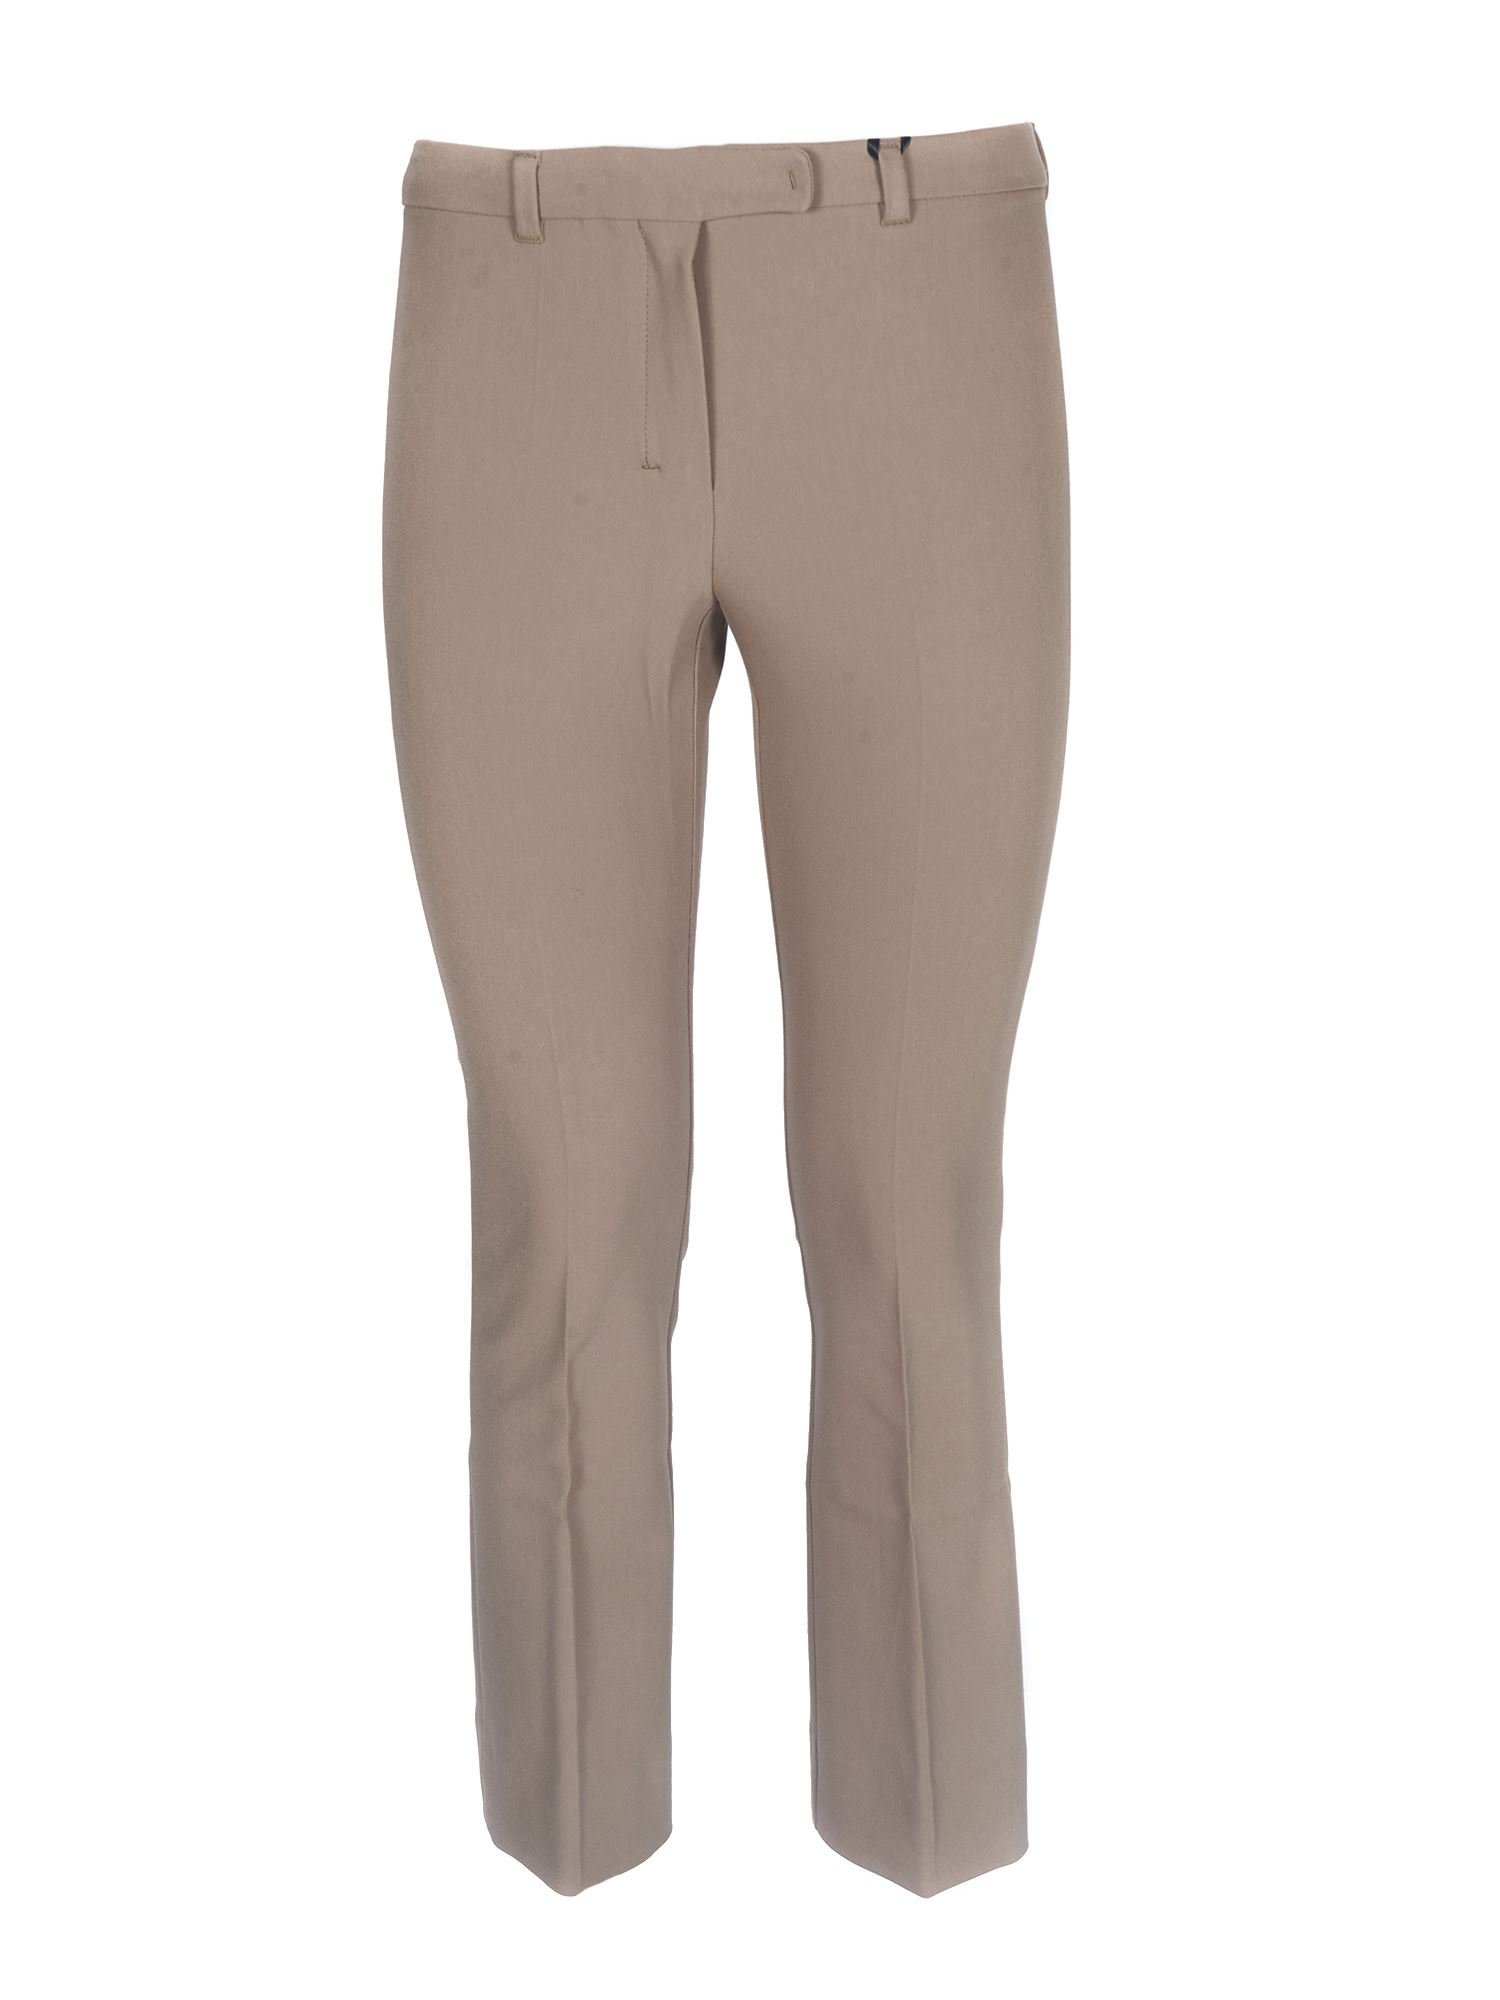 Max Mara Cottons PACCA CROP TROUSERS IN CAMEL COLOR